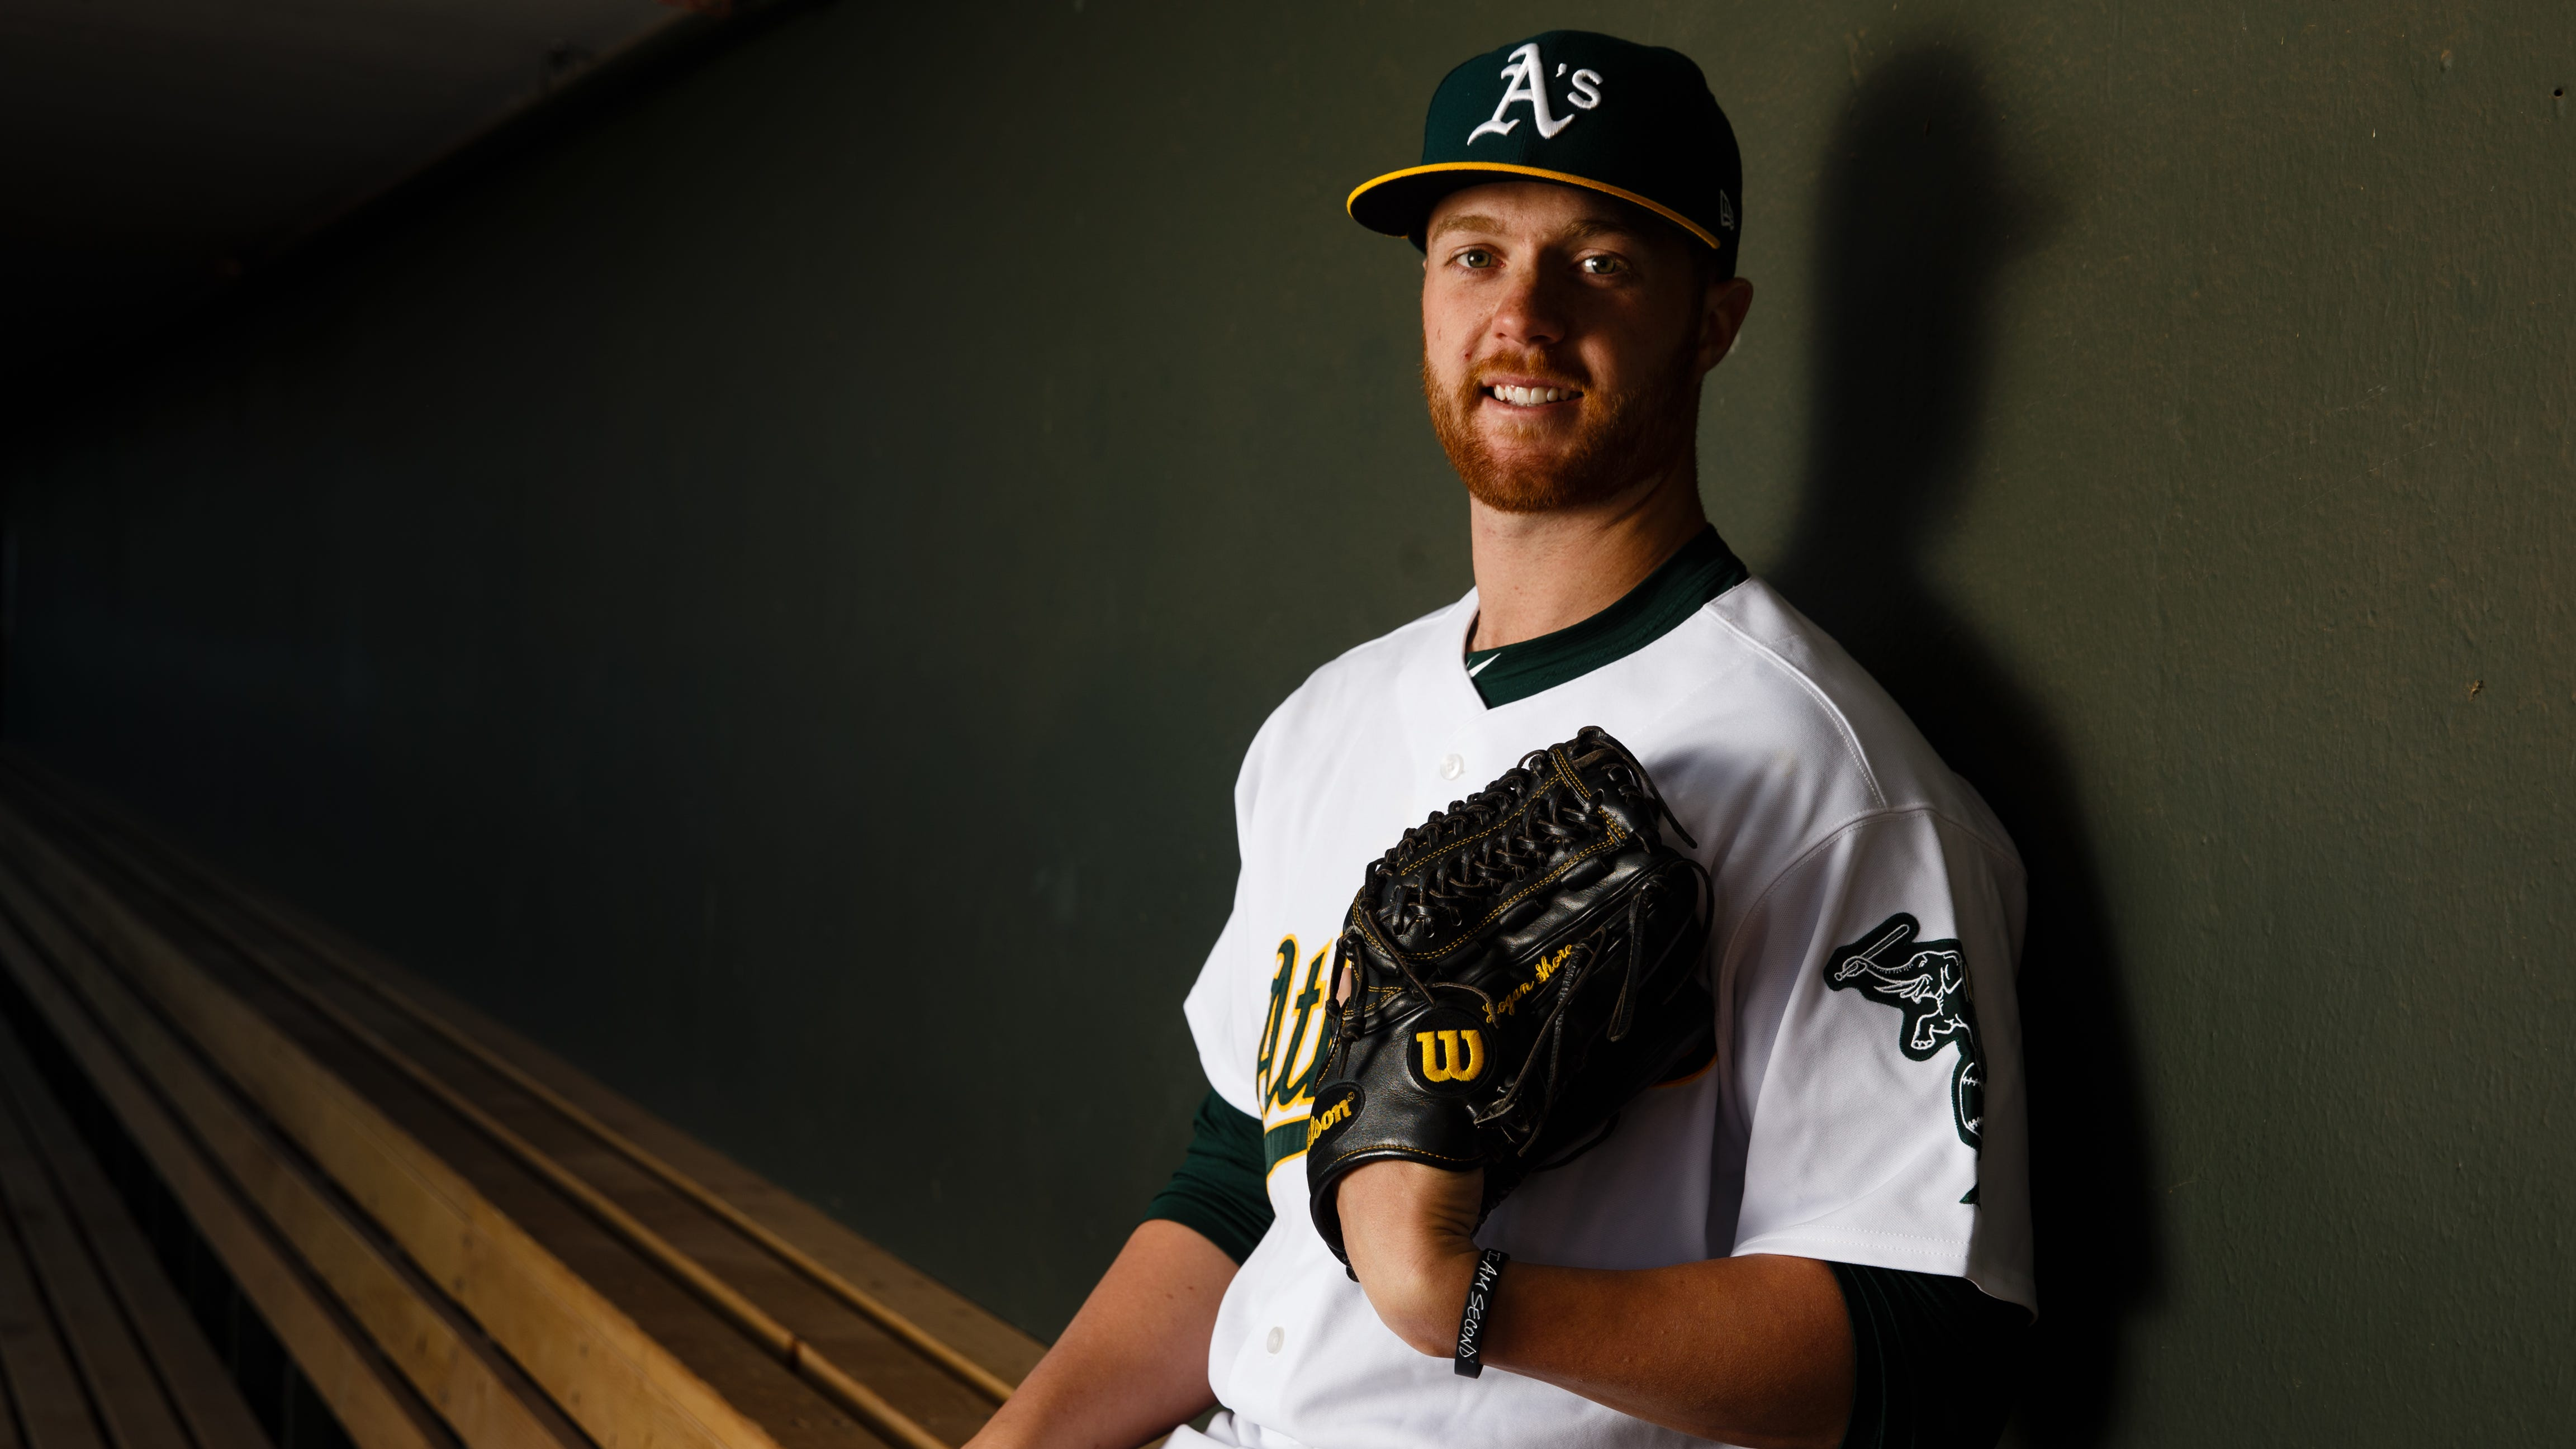 The Tigers acquired pitcher Logan Shore to complete the trade that sent starting pitcher Mike Fiers to Oakland.